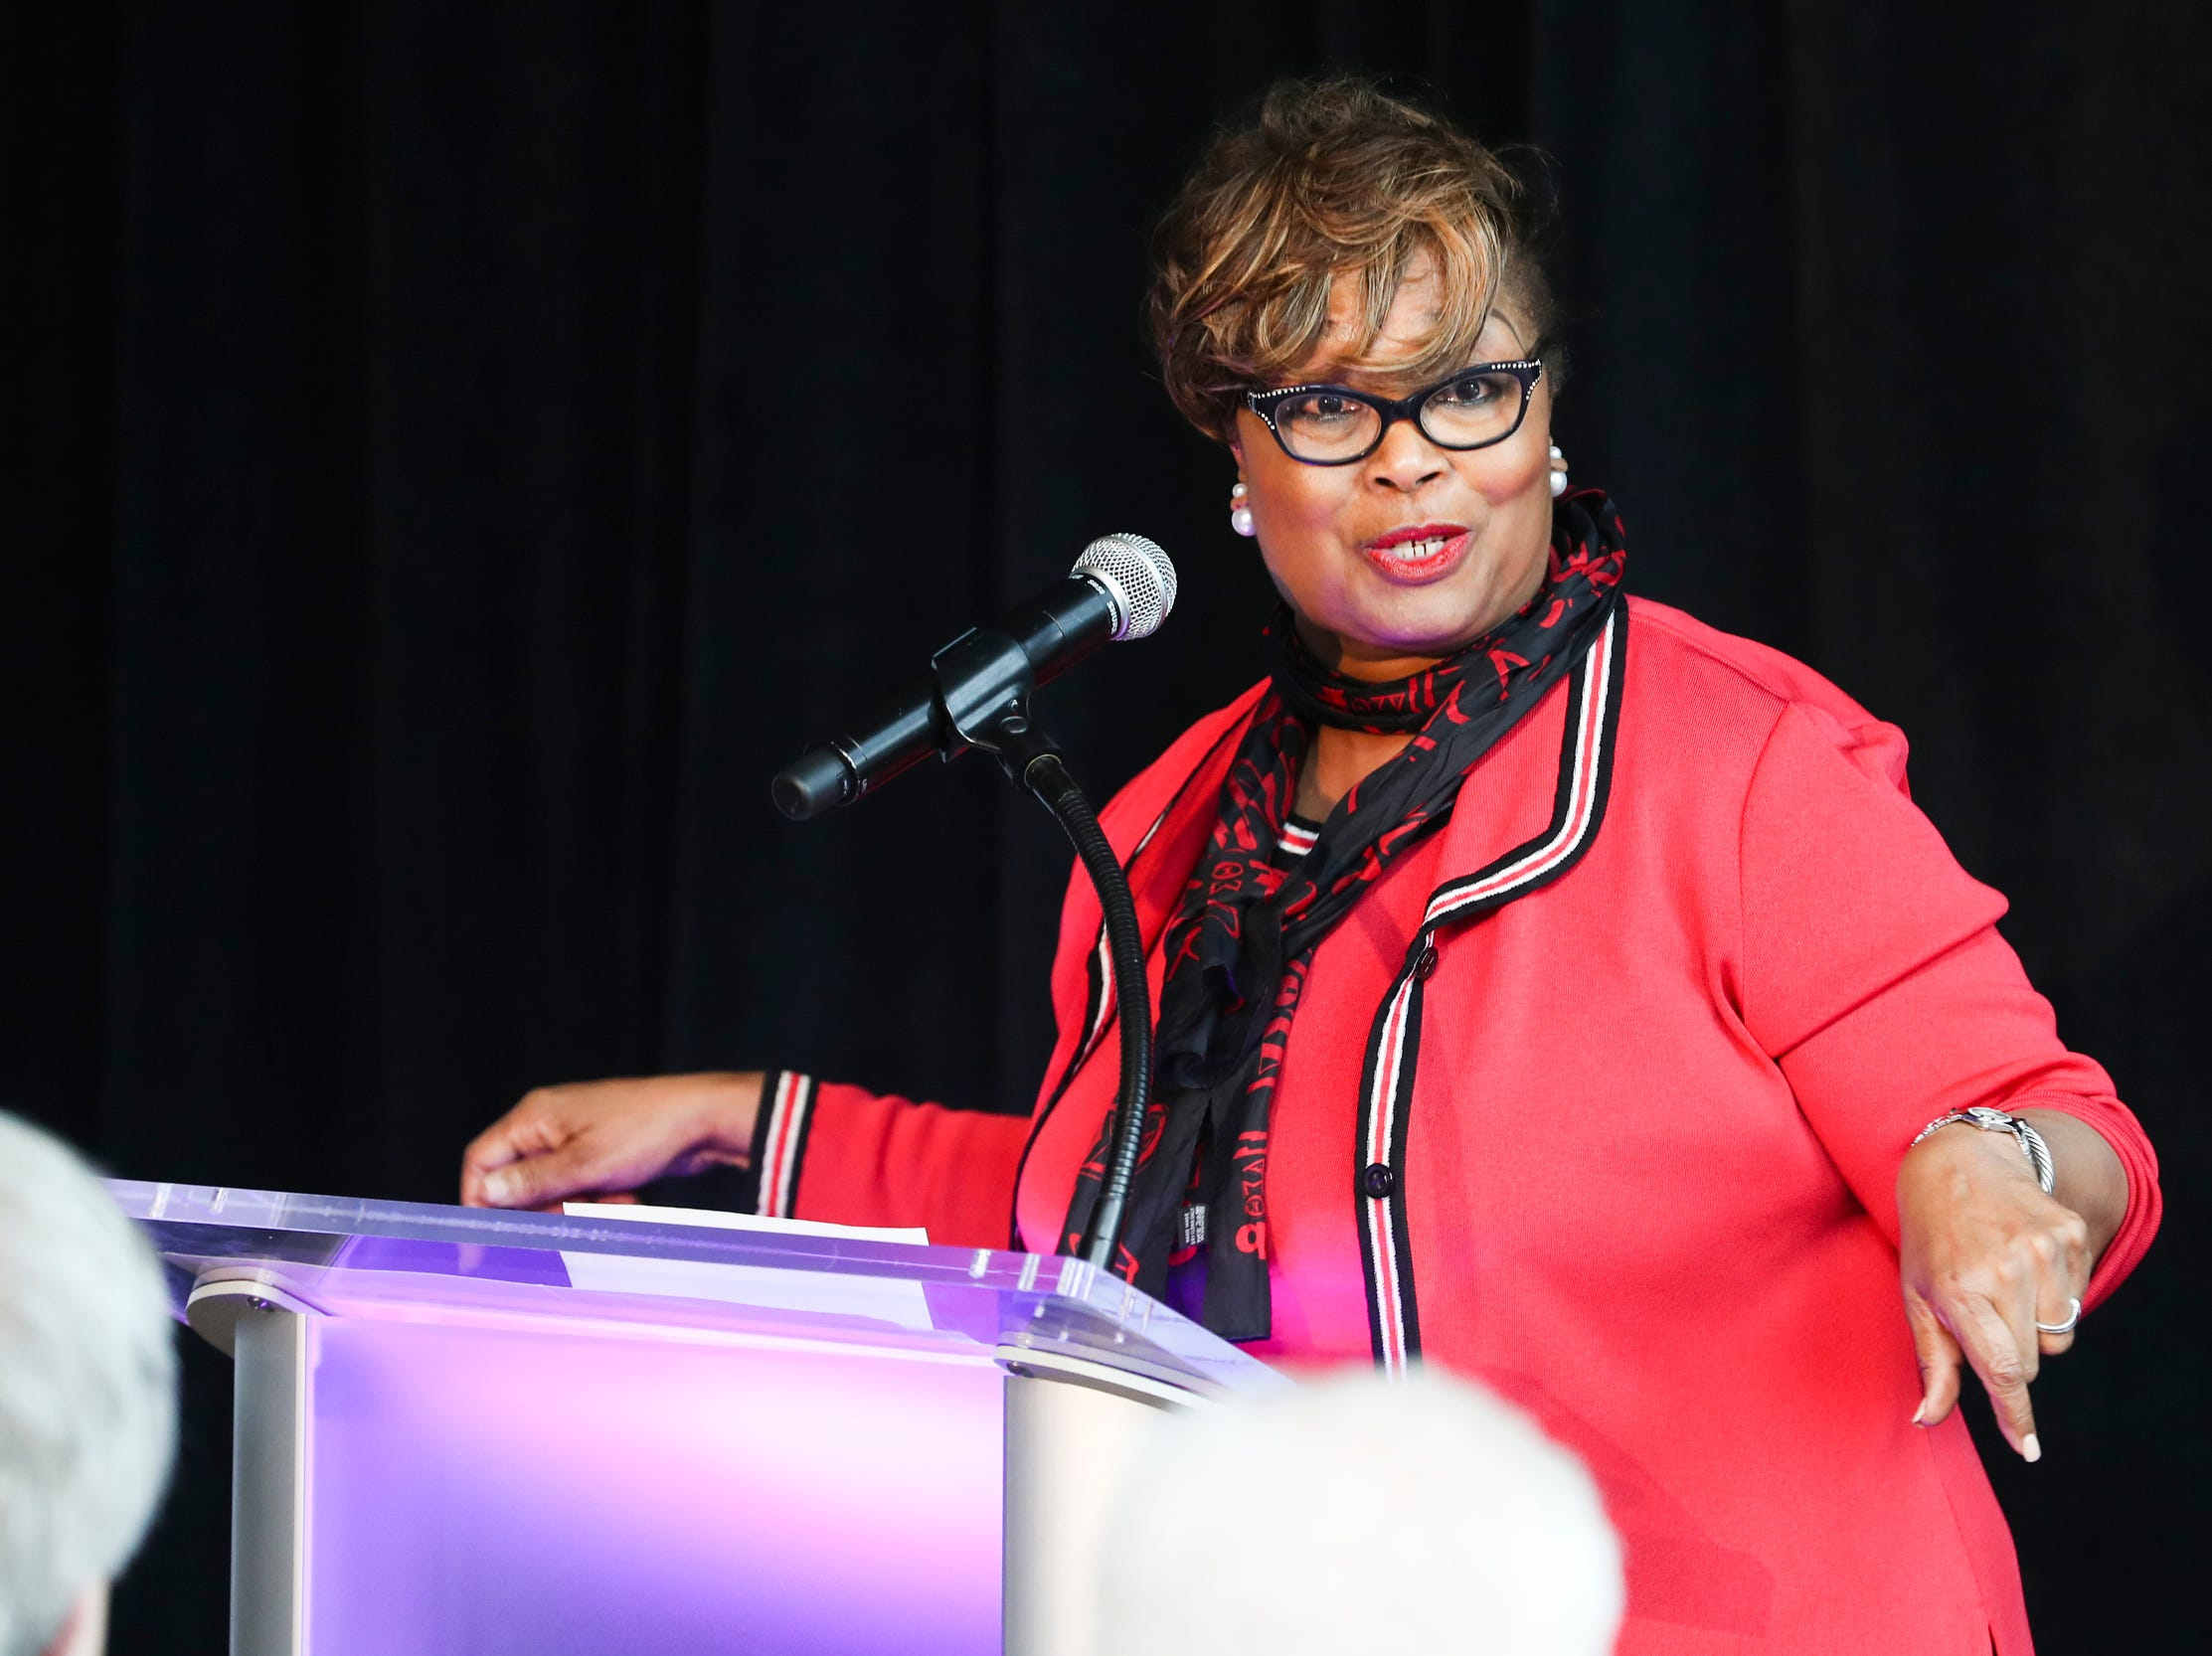 February 12, 2019 - Beverly Robertson, Greater Memphis Chamber president and CEO, speaks during the announcement that FedEx Logistics is relocating to the Gibson Guitar Building. Gov. Bill Lee and local officials made the announcement Tuesday at the former guitar factory off Beale Street. This is Lee's first economic development announcement since taking office.